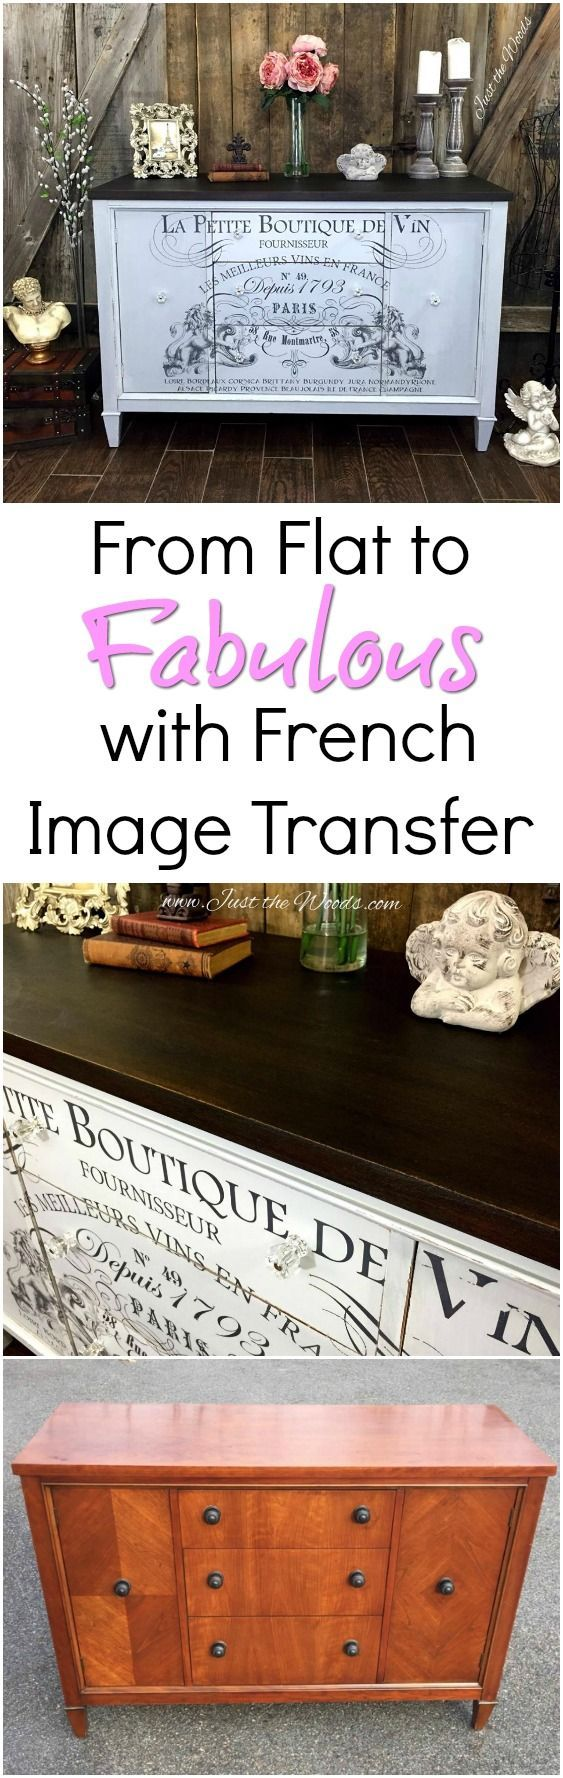 How to paint a vintage buffet home stories a to z - French Image Transfer On Painted Vintage Buffet